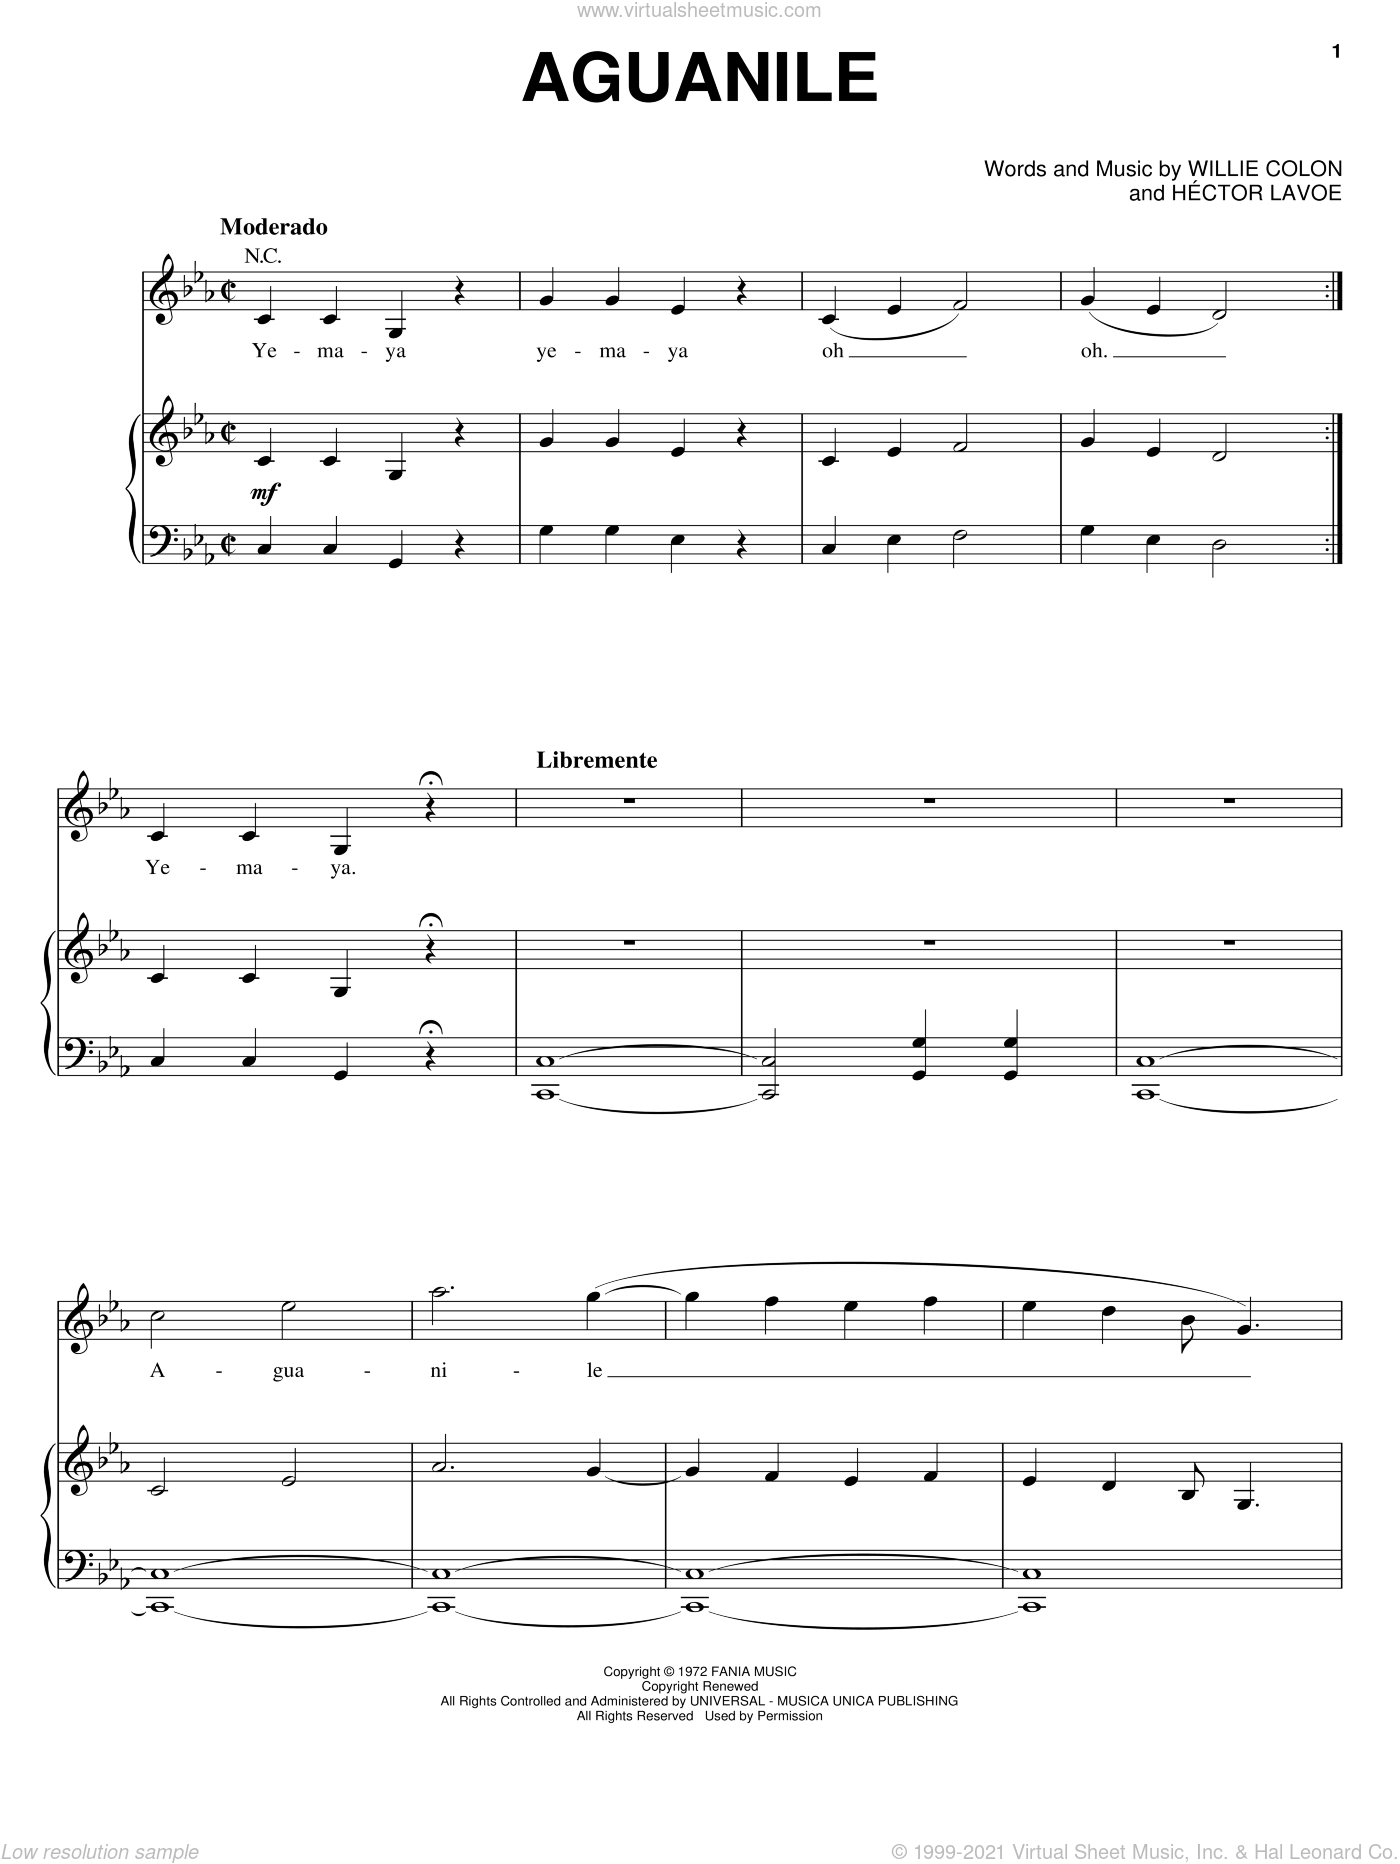 Aguanile sheet music for voice, piano or guitar by Hector Lavoe